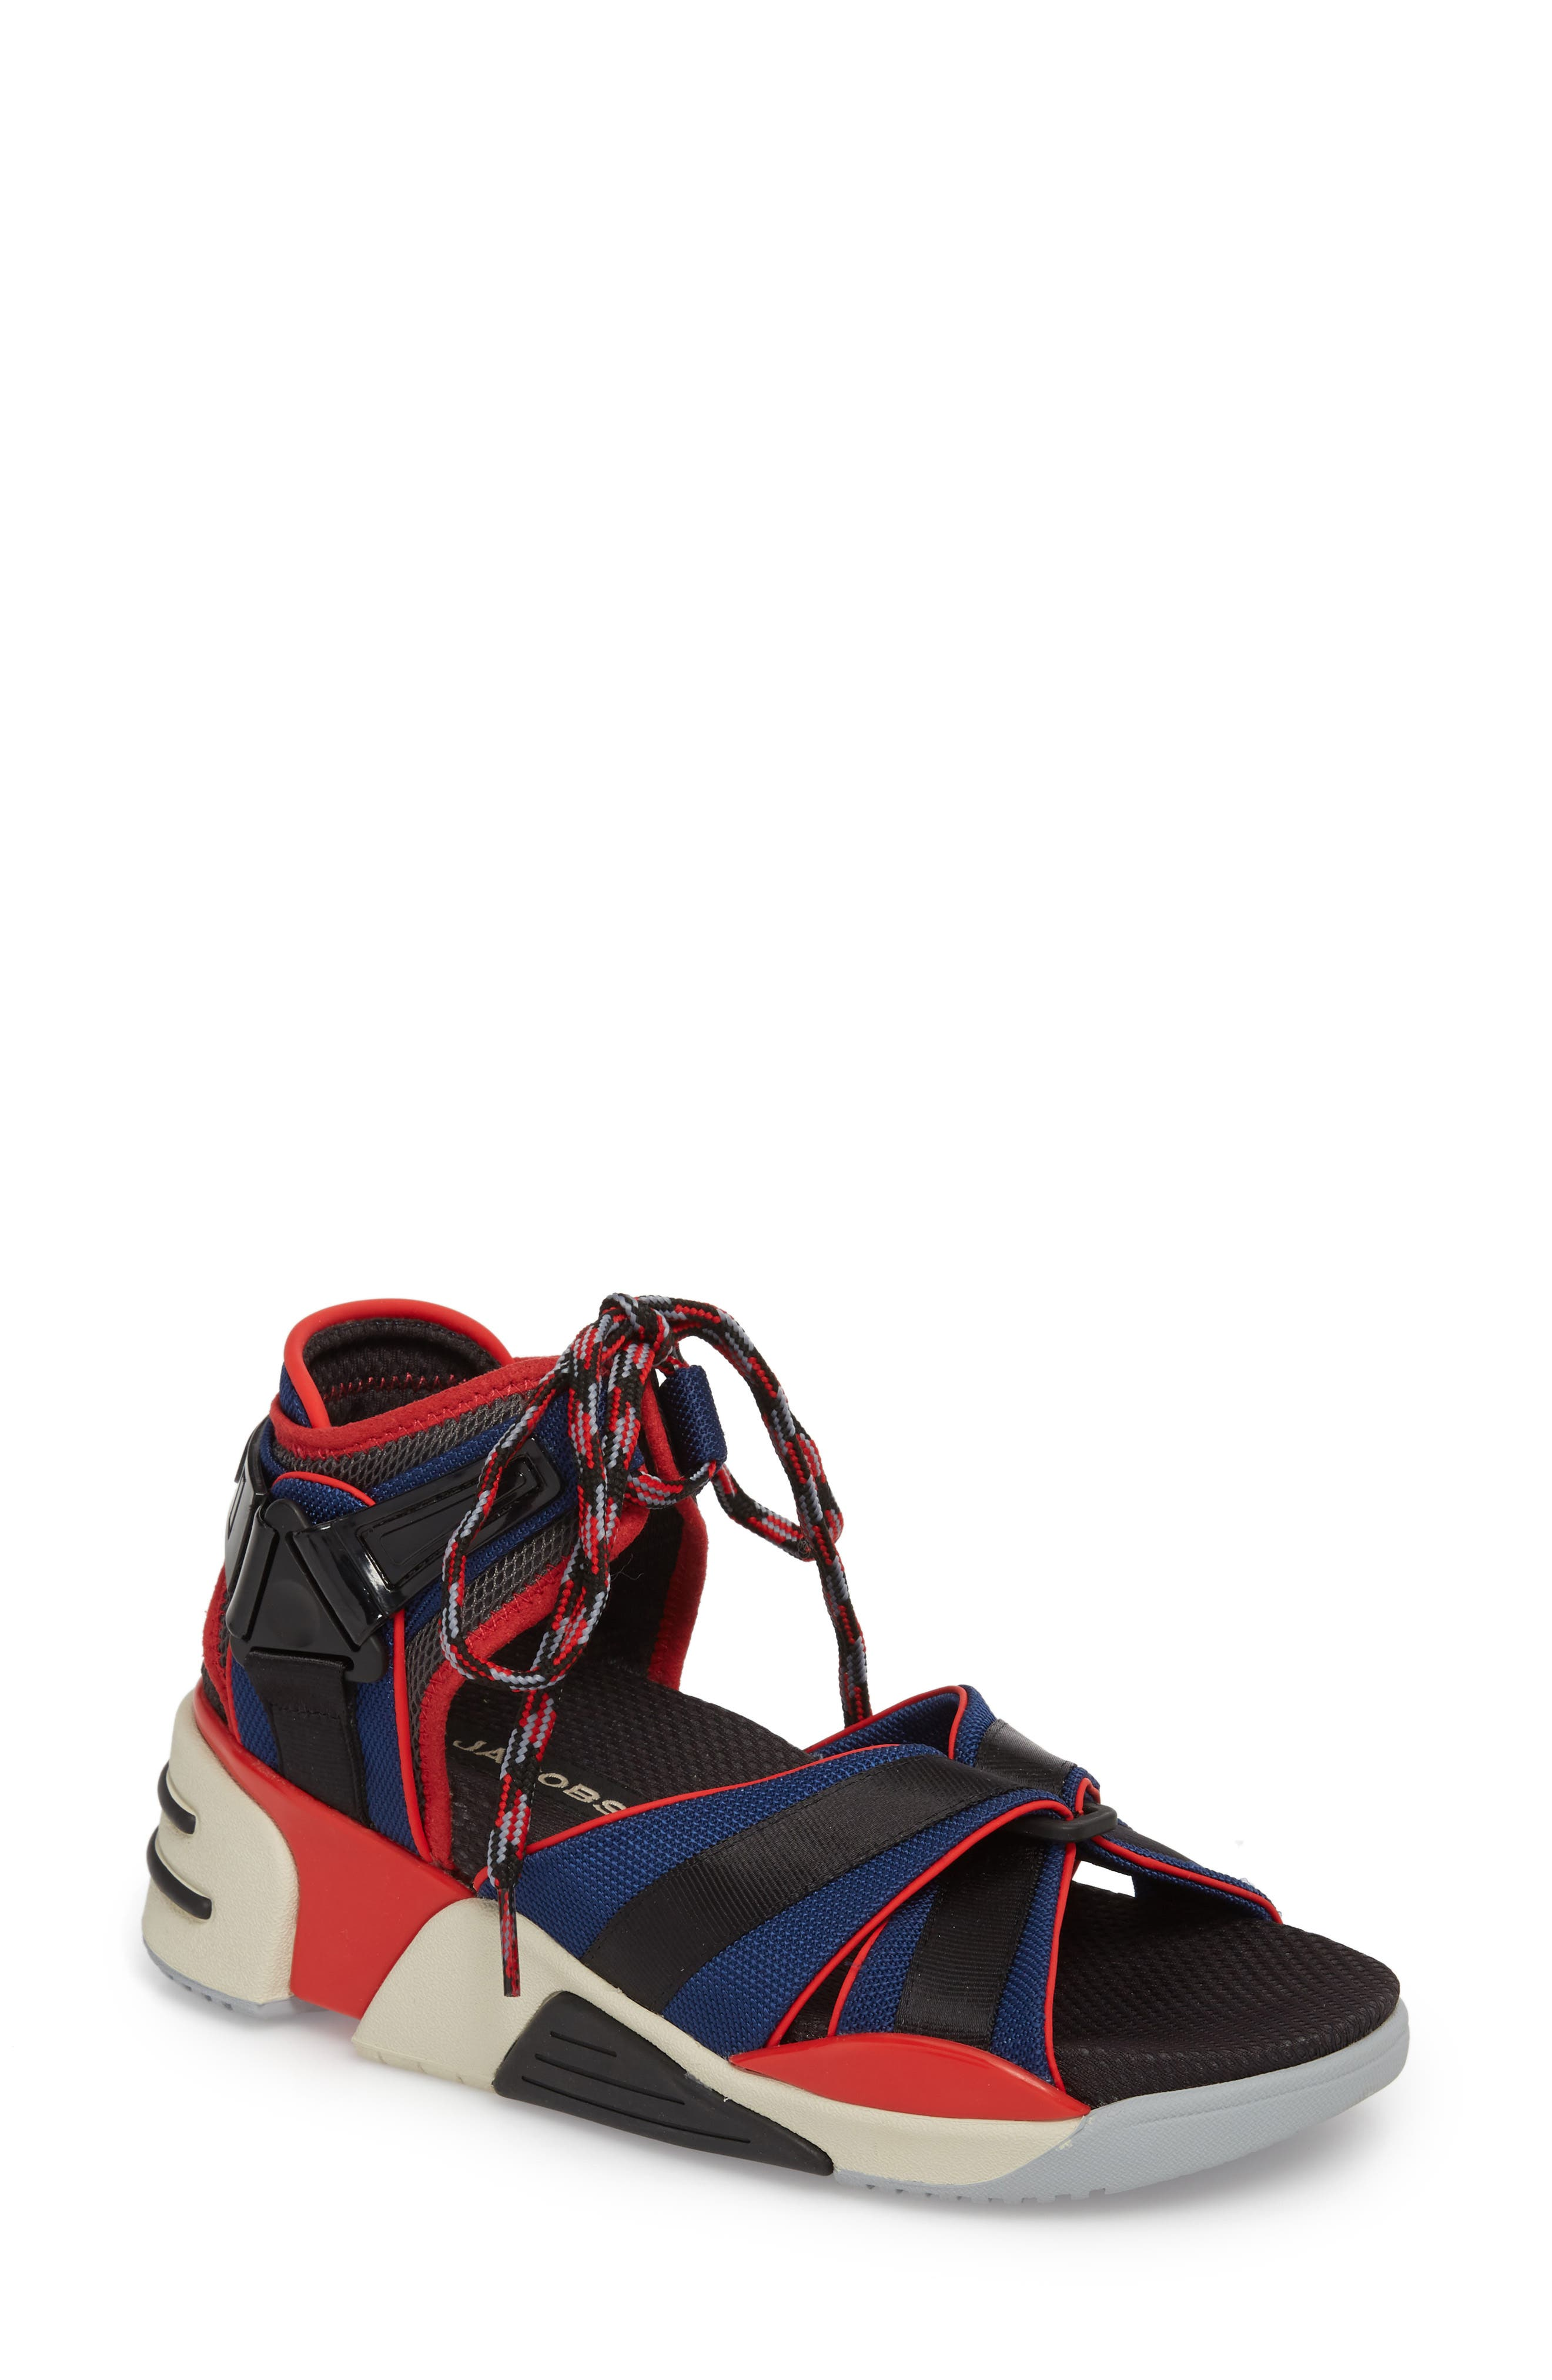 Somewhere Sport Sandal,                         Main,                         color, Red Multi